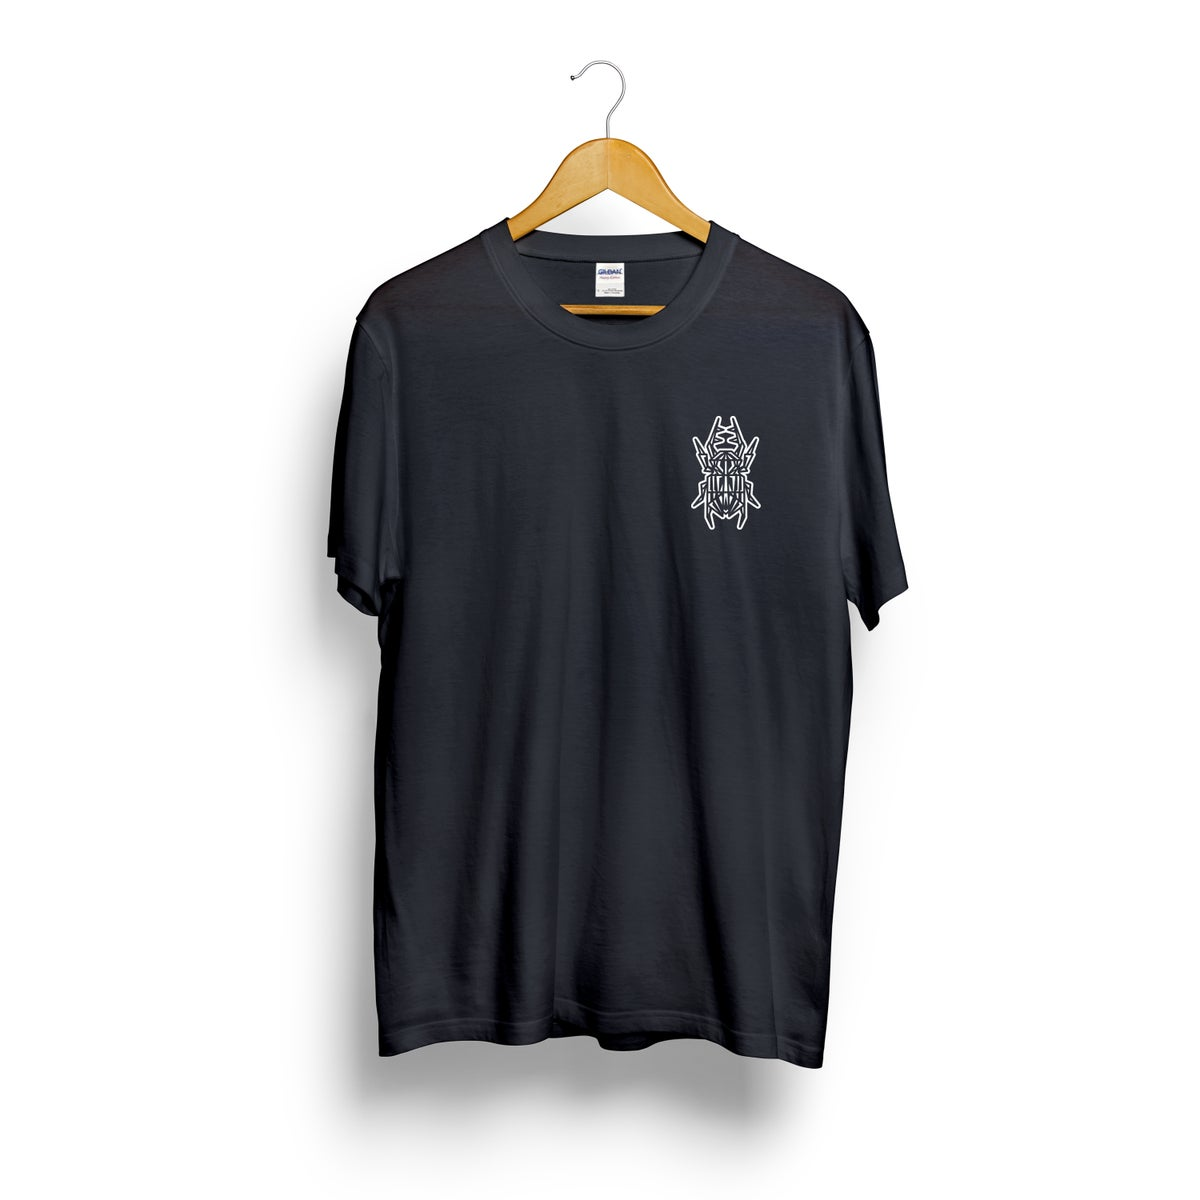 Image of Beetle Breast Pocket Print Black Tee